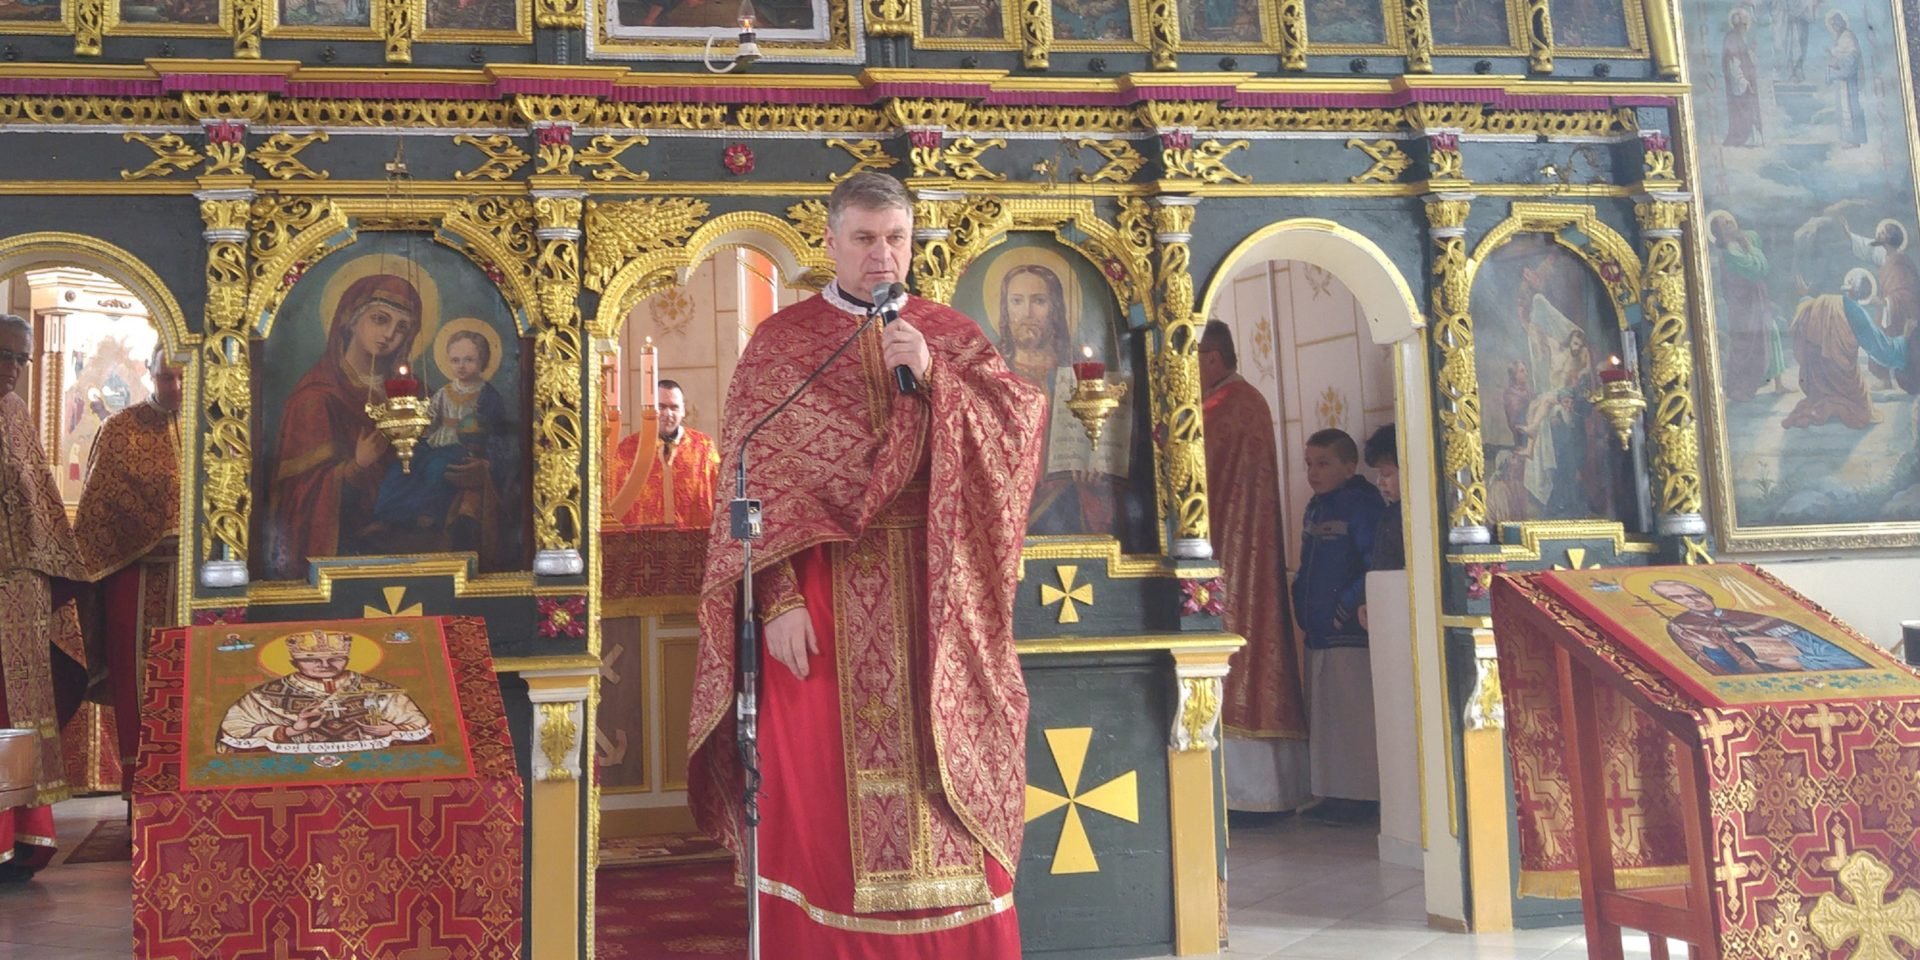 Interview with priest Jaroslav Popovec, the head of the Society of St. John the Baptist